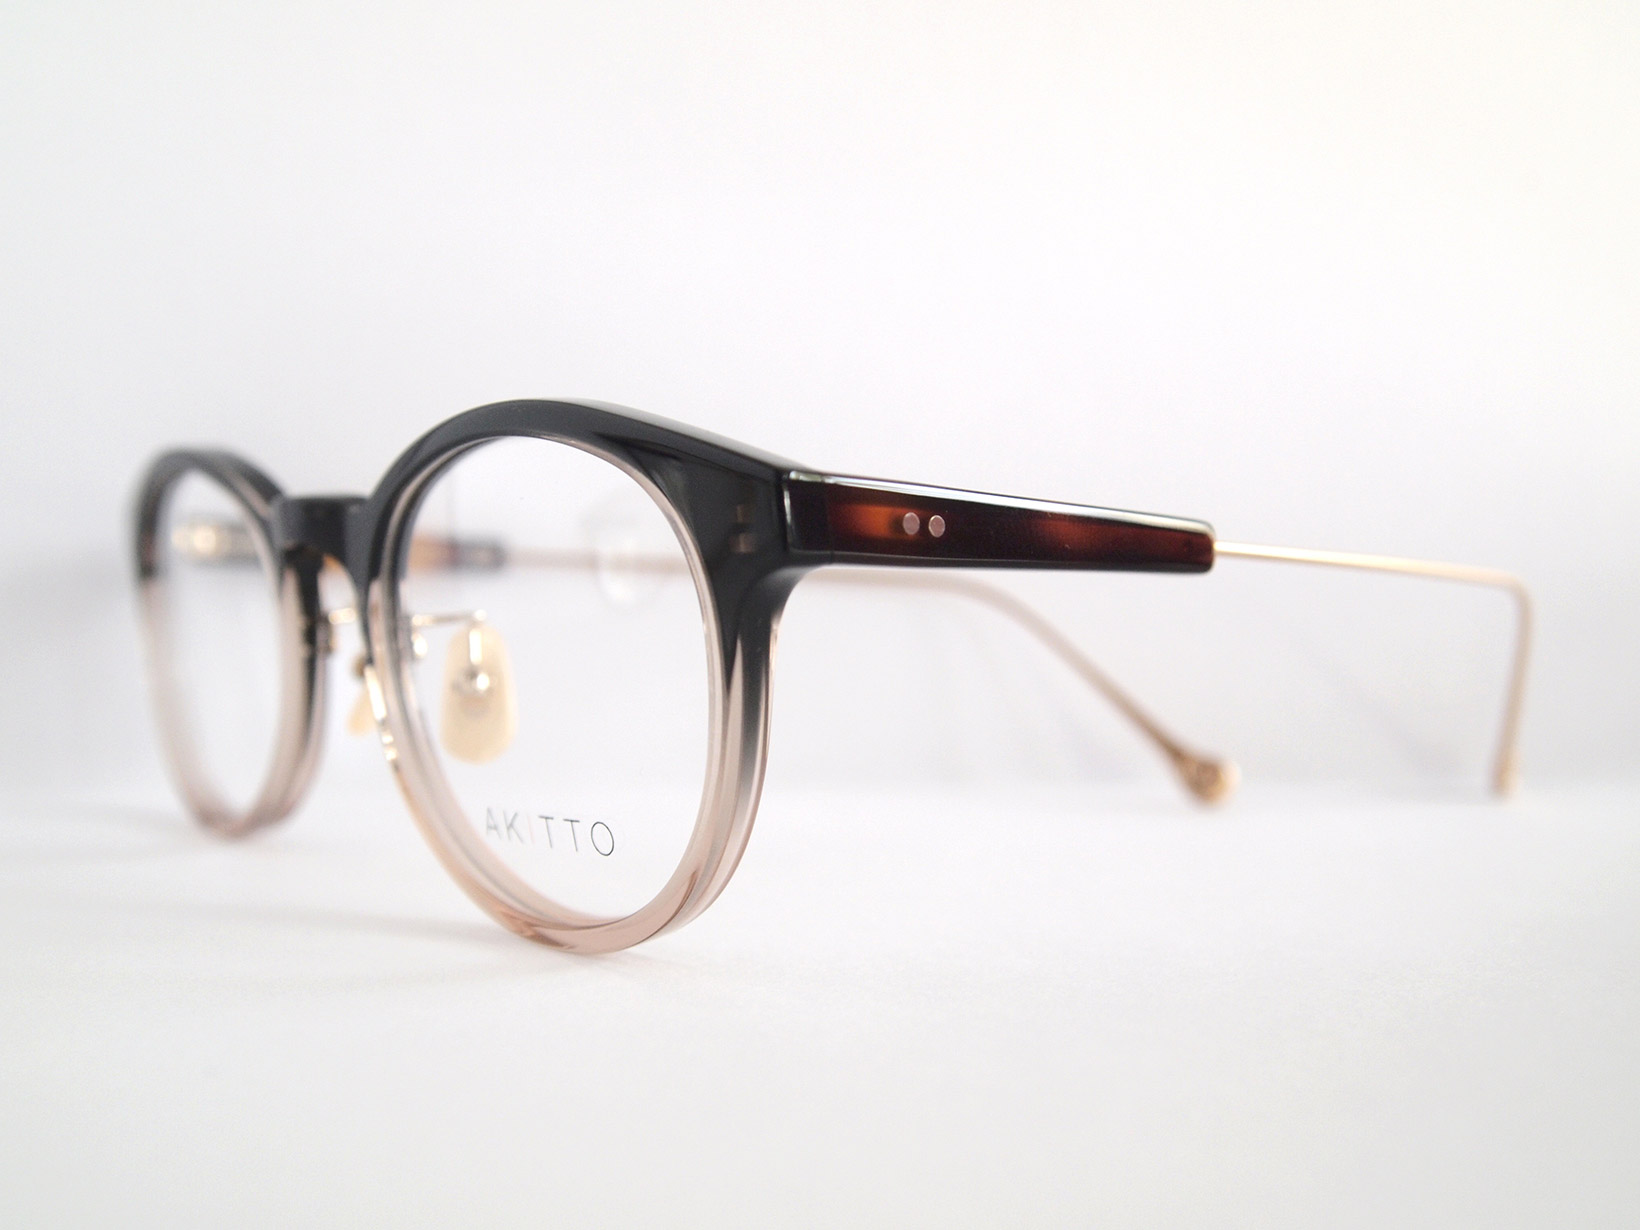 AKITTO 2018-4th rog2 color|GR size:47□21 material:acetate+titanium price:¥39,800-(+tax)